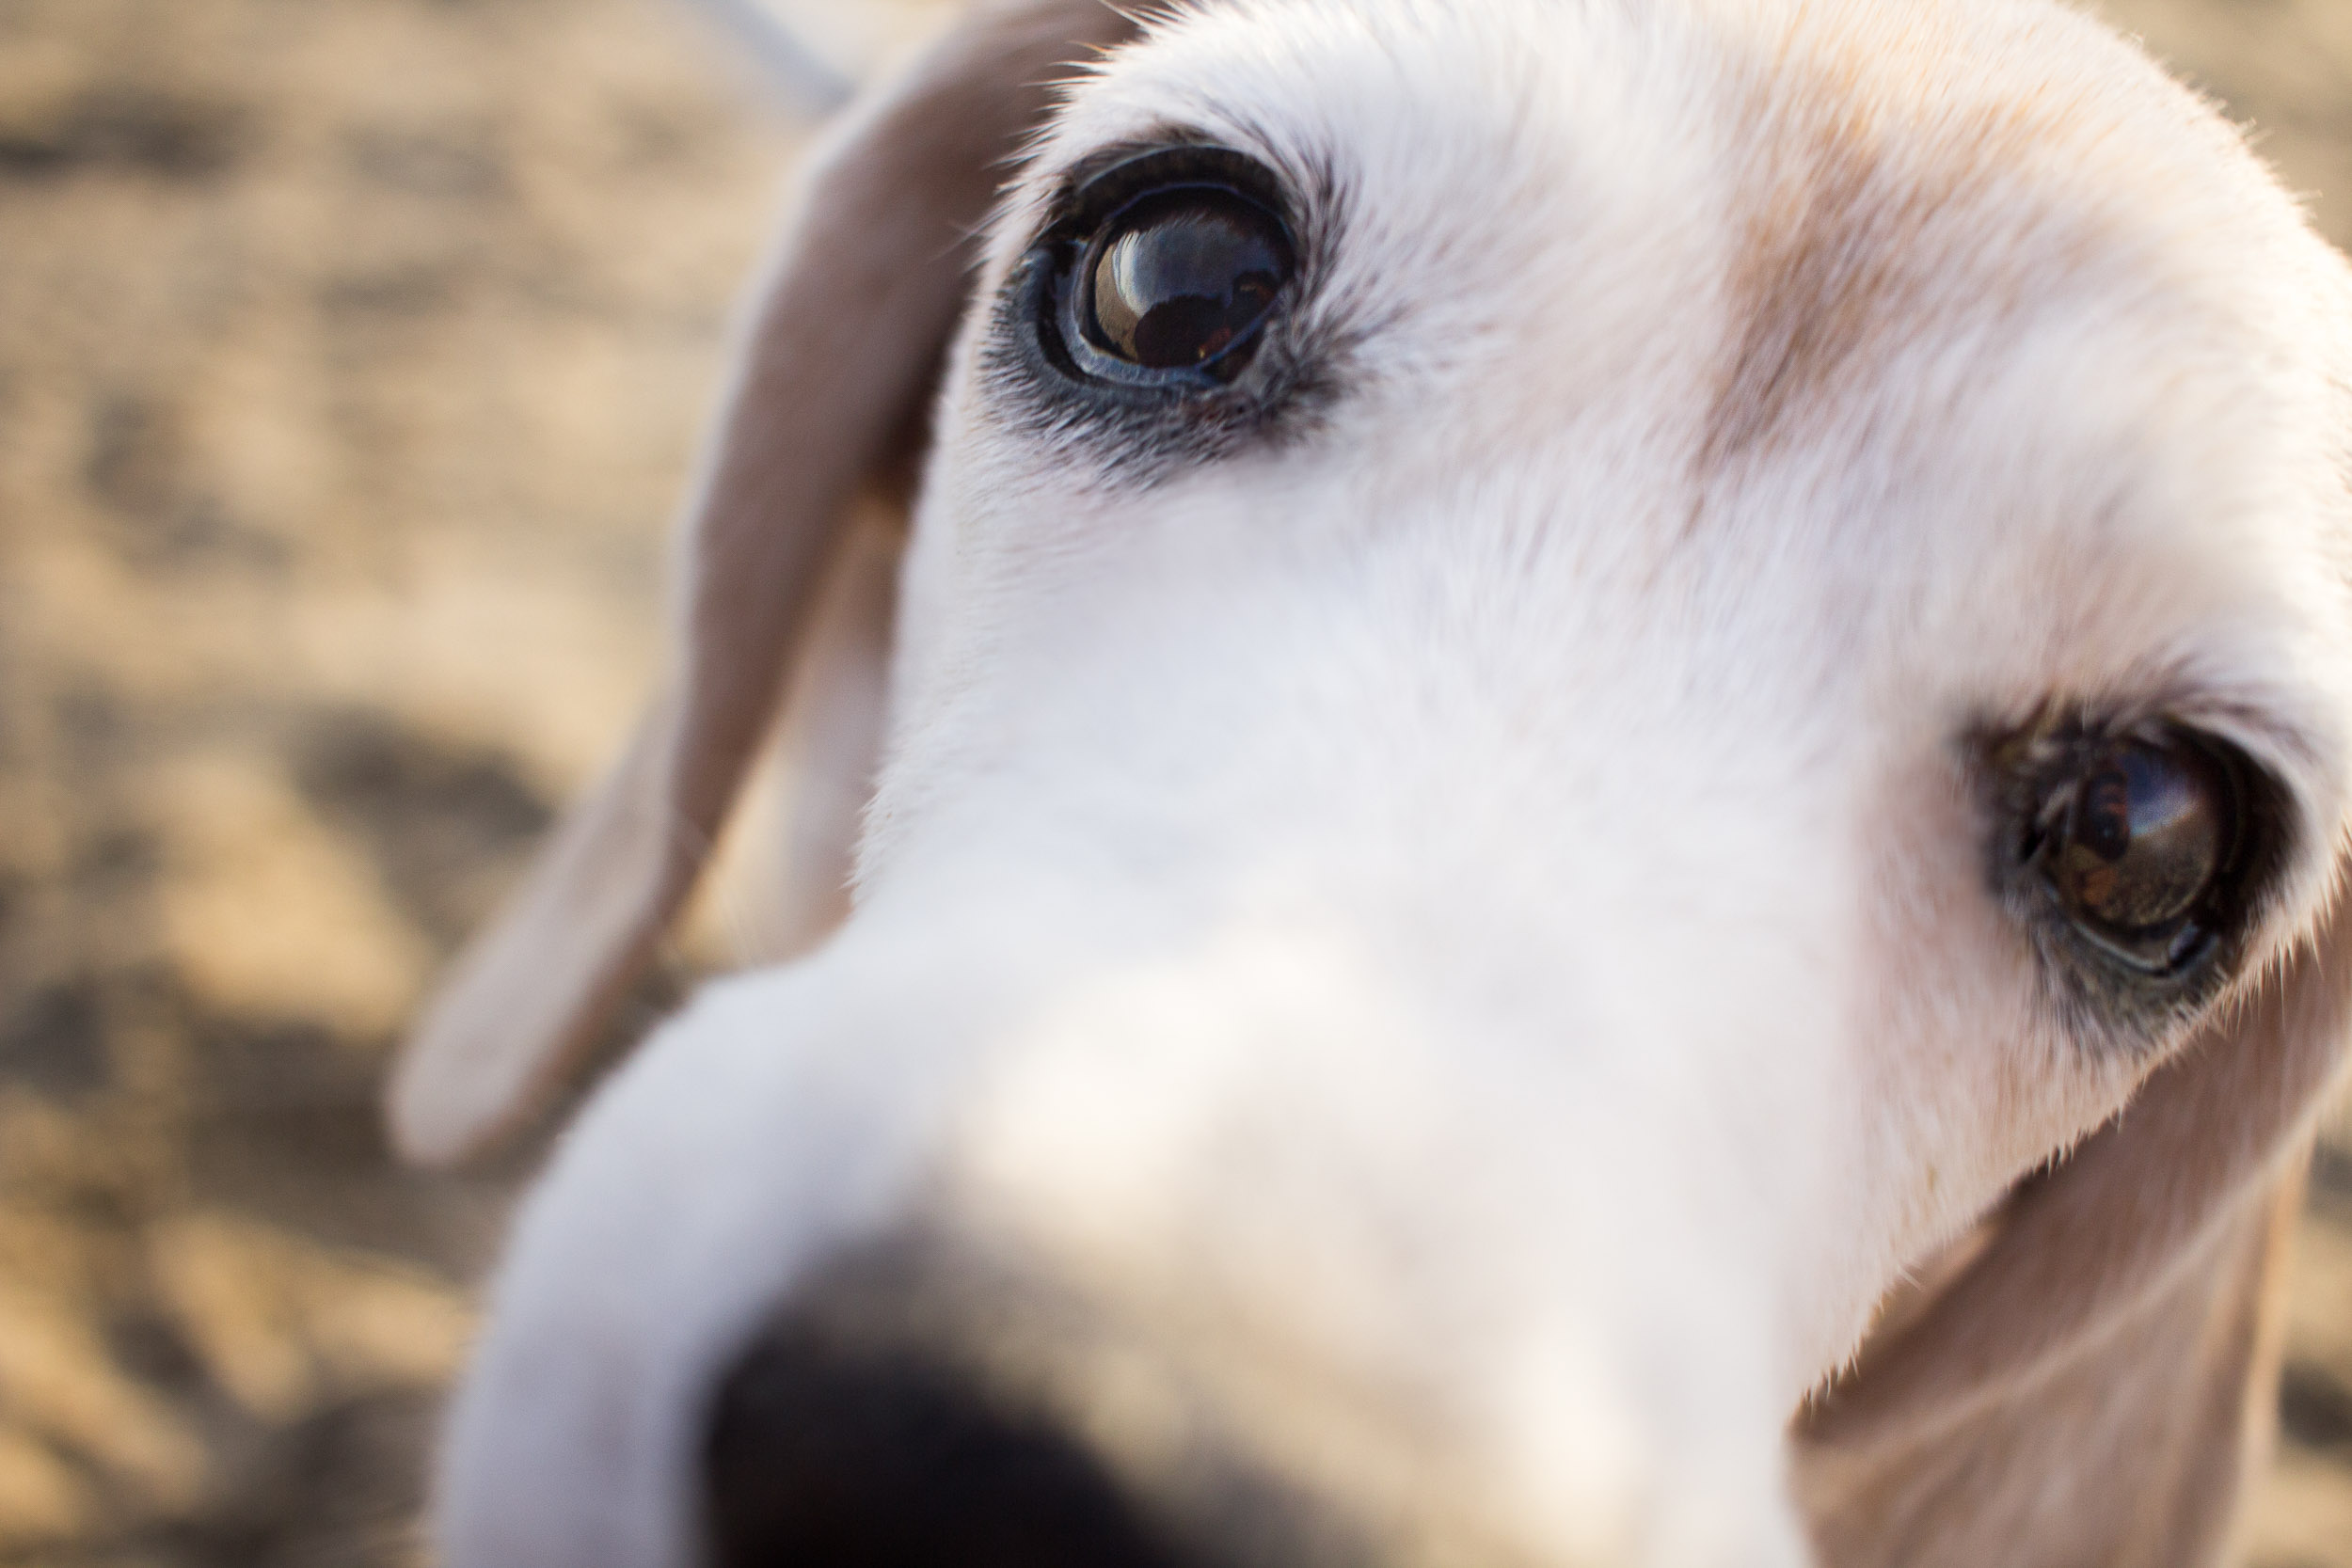 I'm a sucker for close-ups portraits of dogs. They instantly make me feel like I'm looking straight into their eyes, and I can hear the little *sniff-sniff-sniff-sniff* sound that dogs make when they curiously come up to you like this. Besides, beagles are known for their powerful noses.